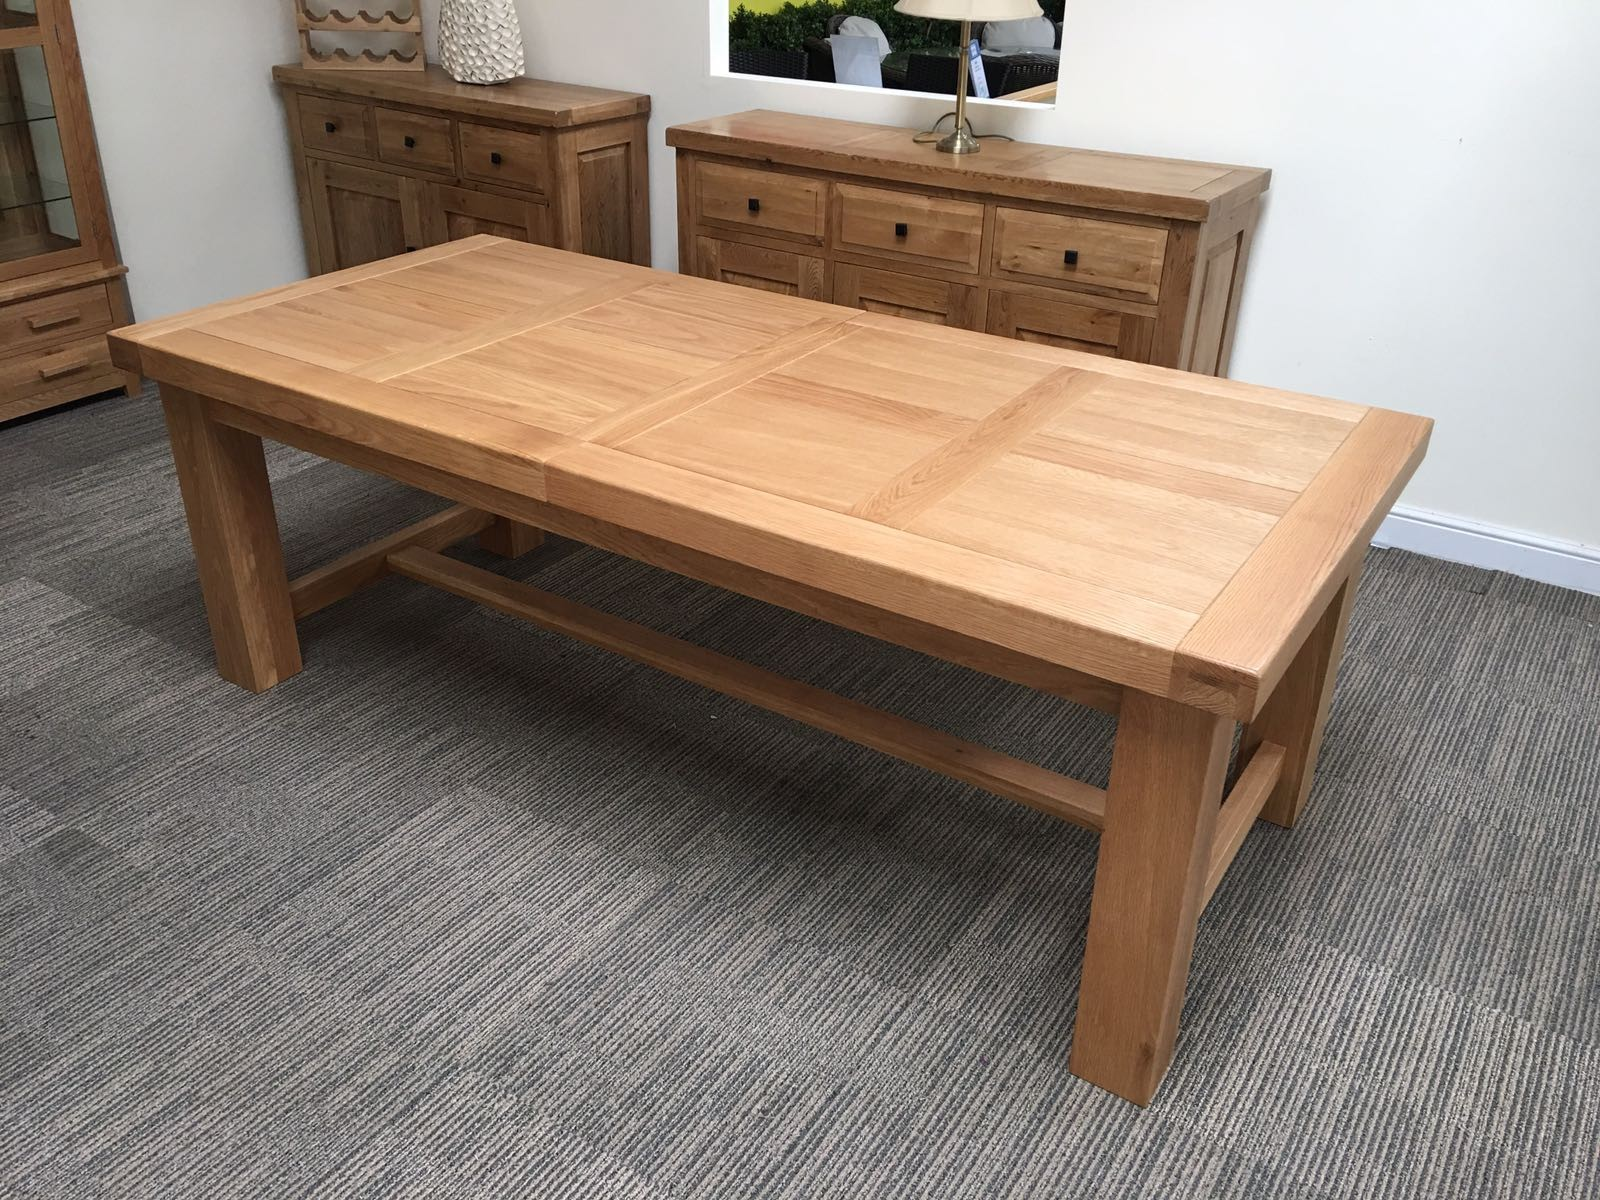 oak table engaging oak extending table 14 oakita vienna solid dining 38 living MQURMDP